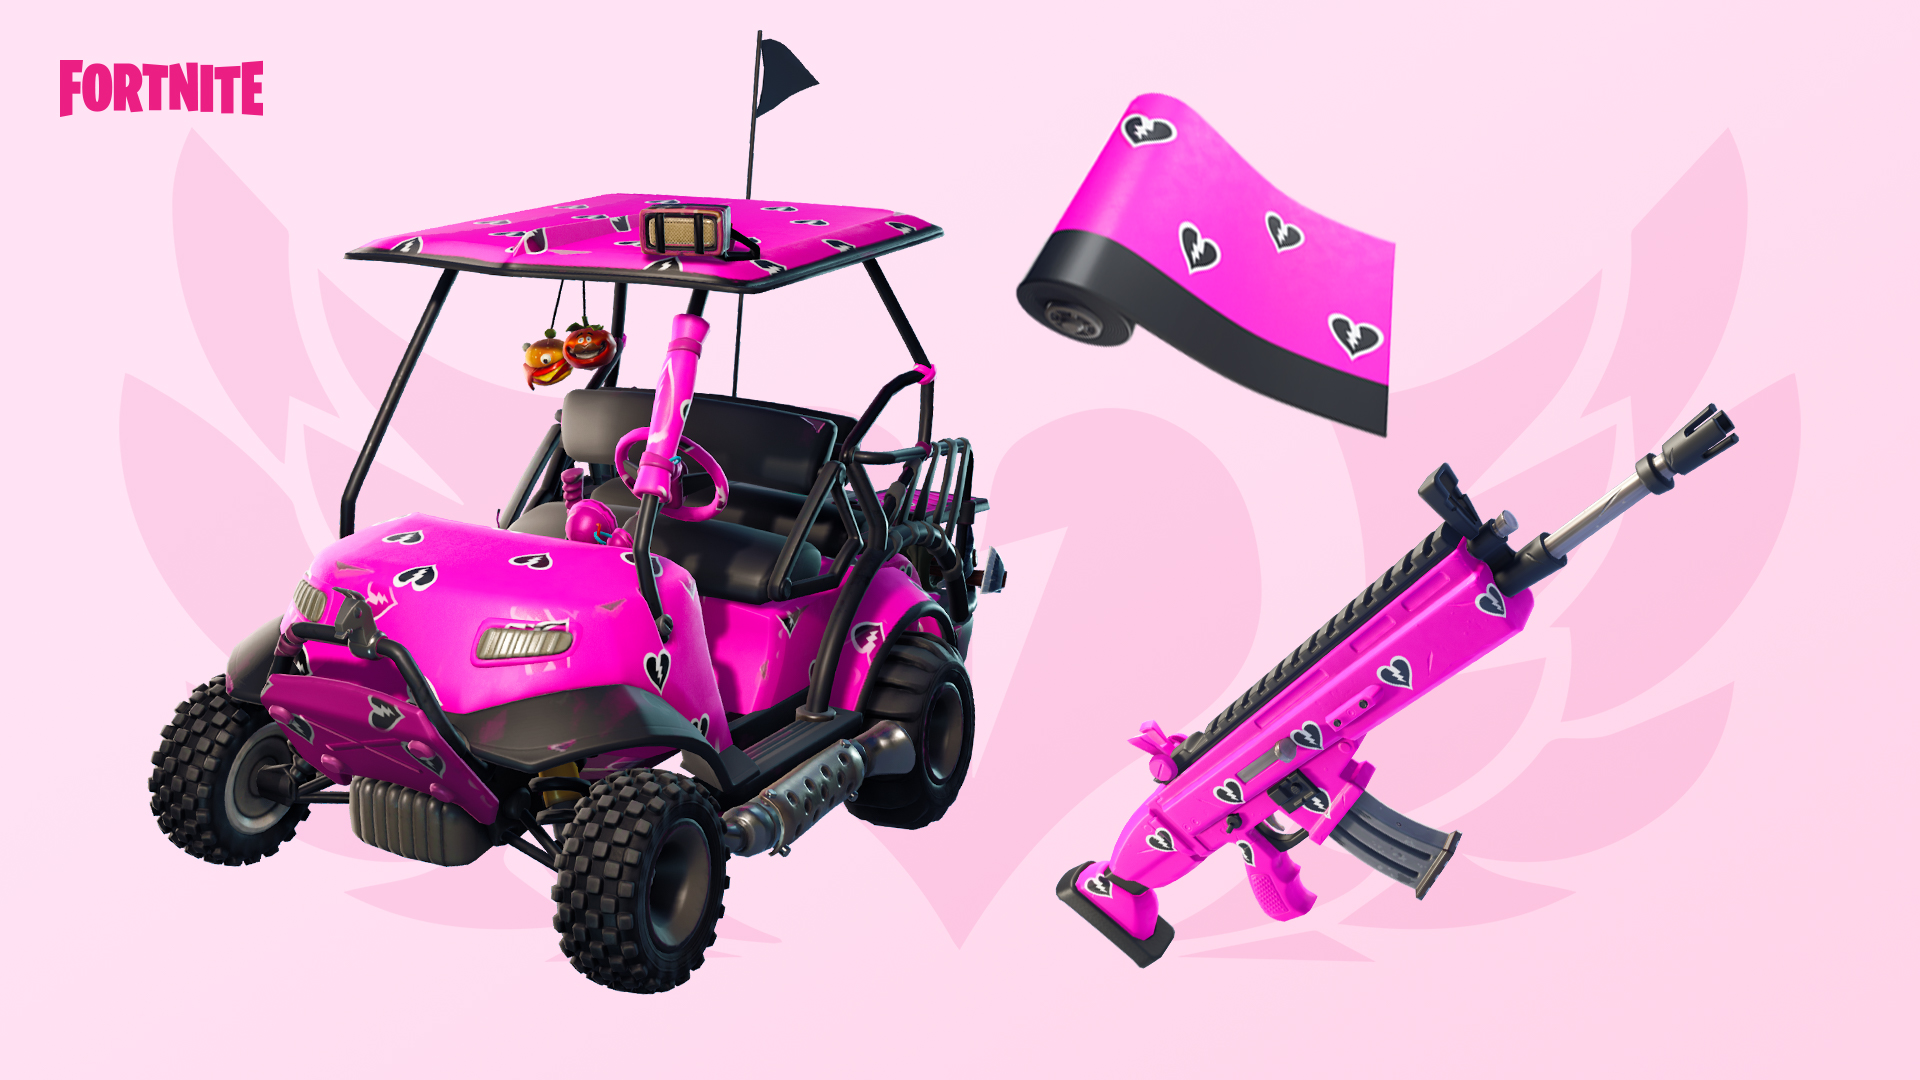 Image of the Fortnite Cuddle Hearts wrap.